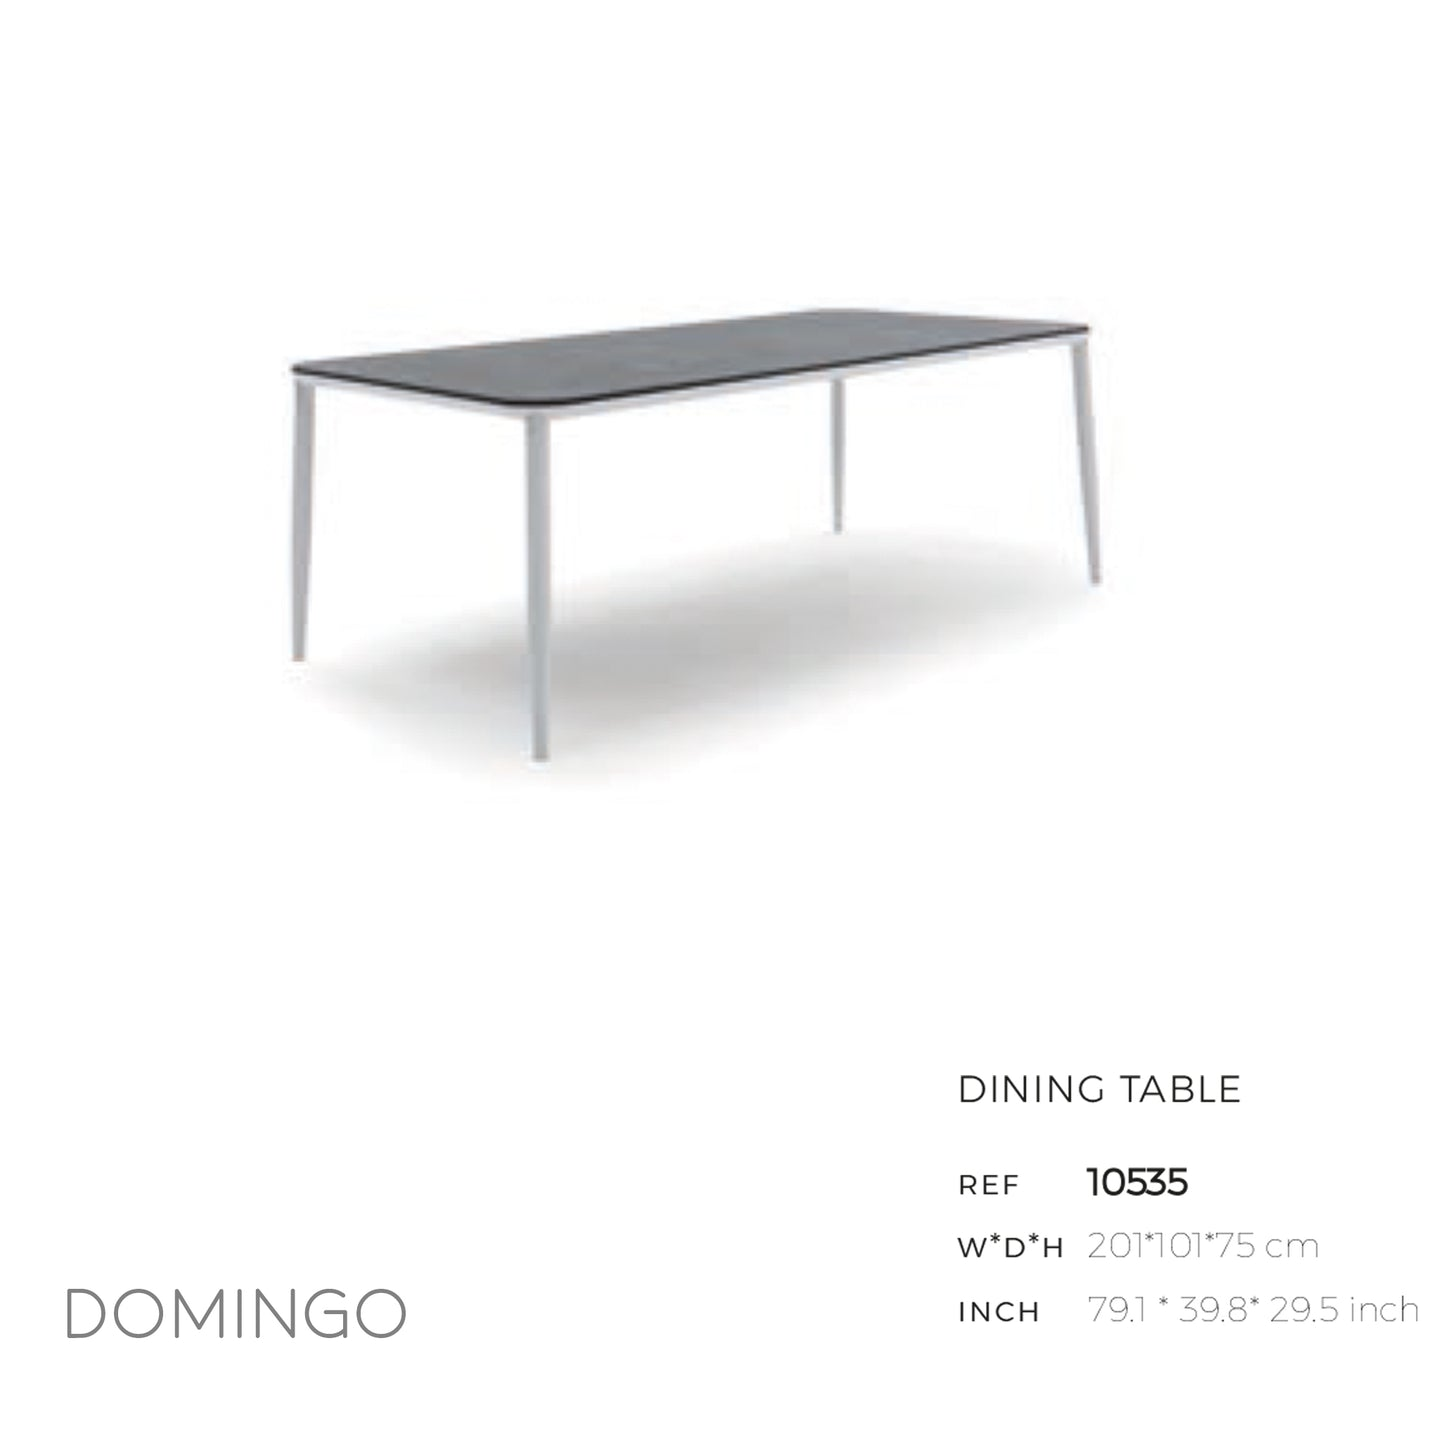 Domingo Dining Table